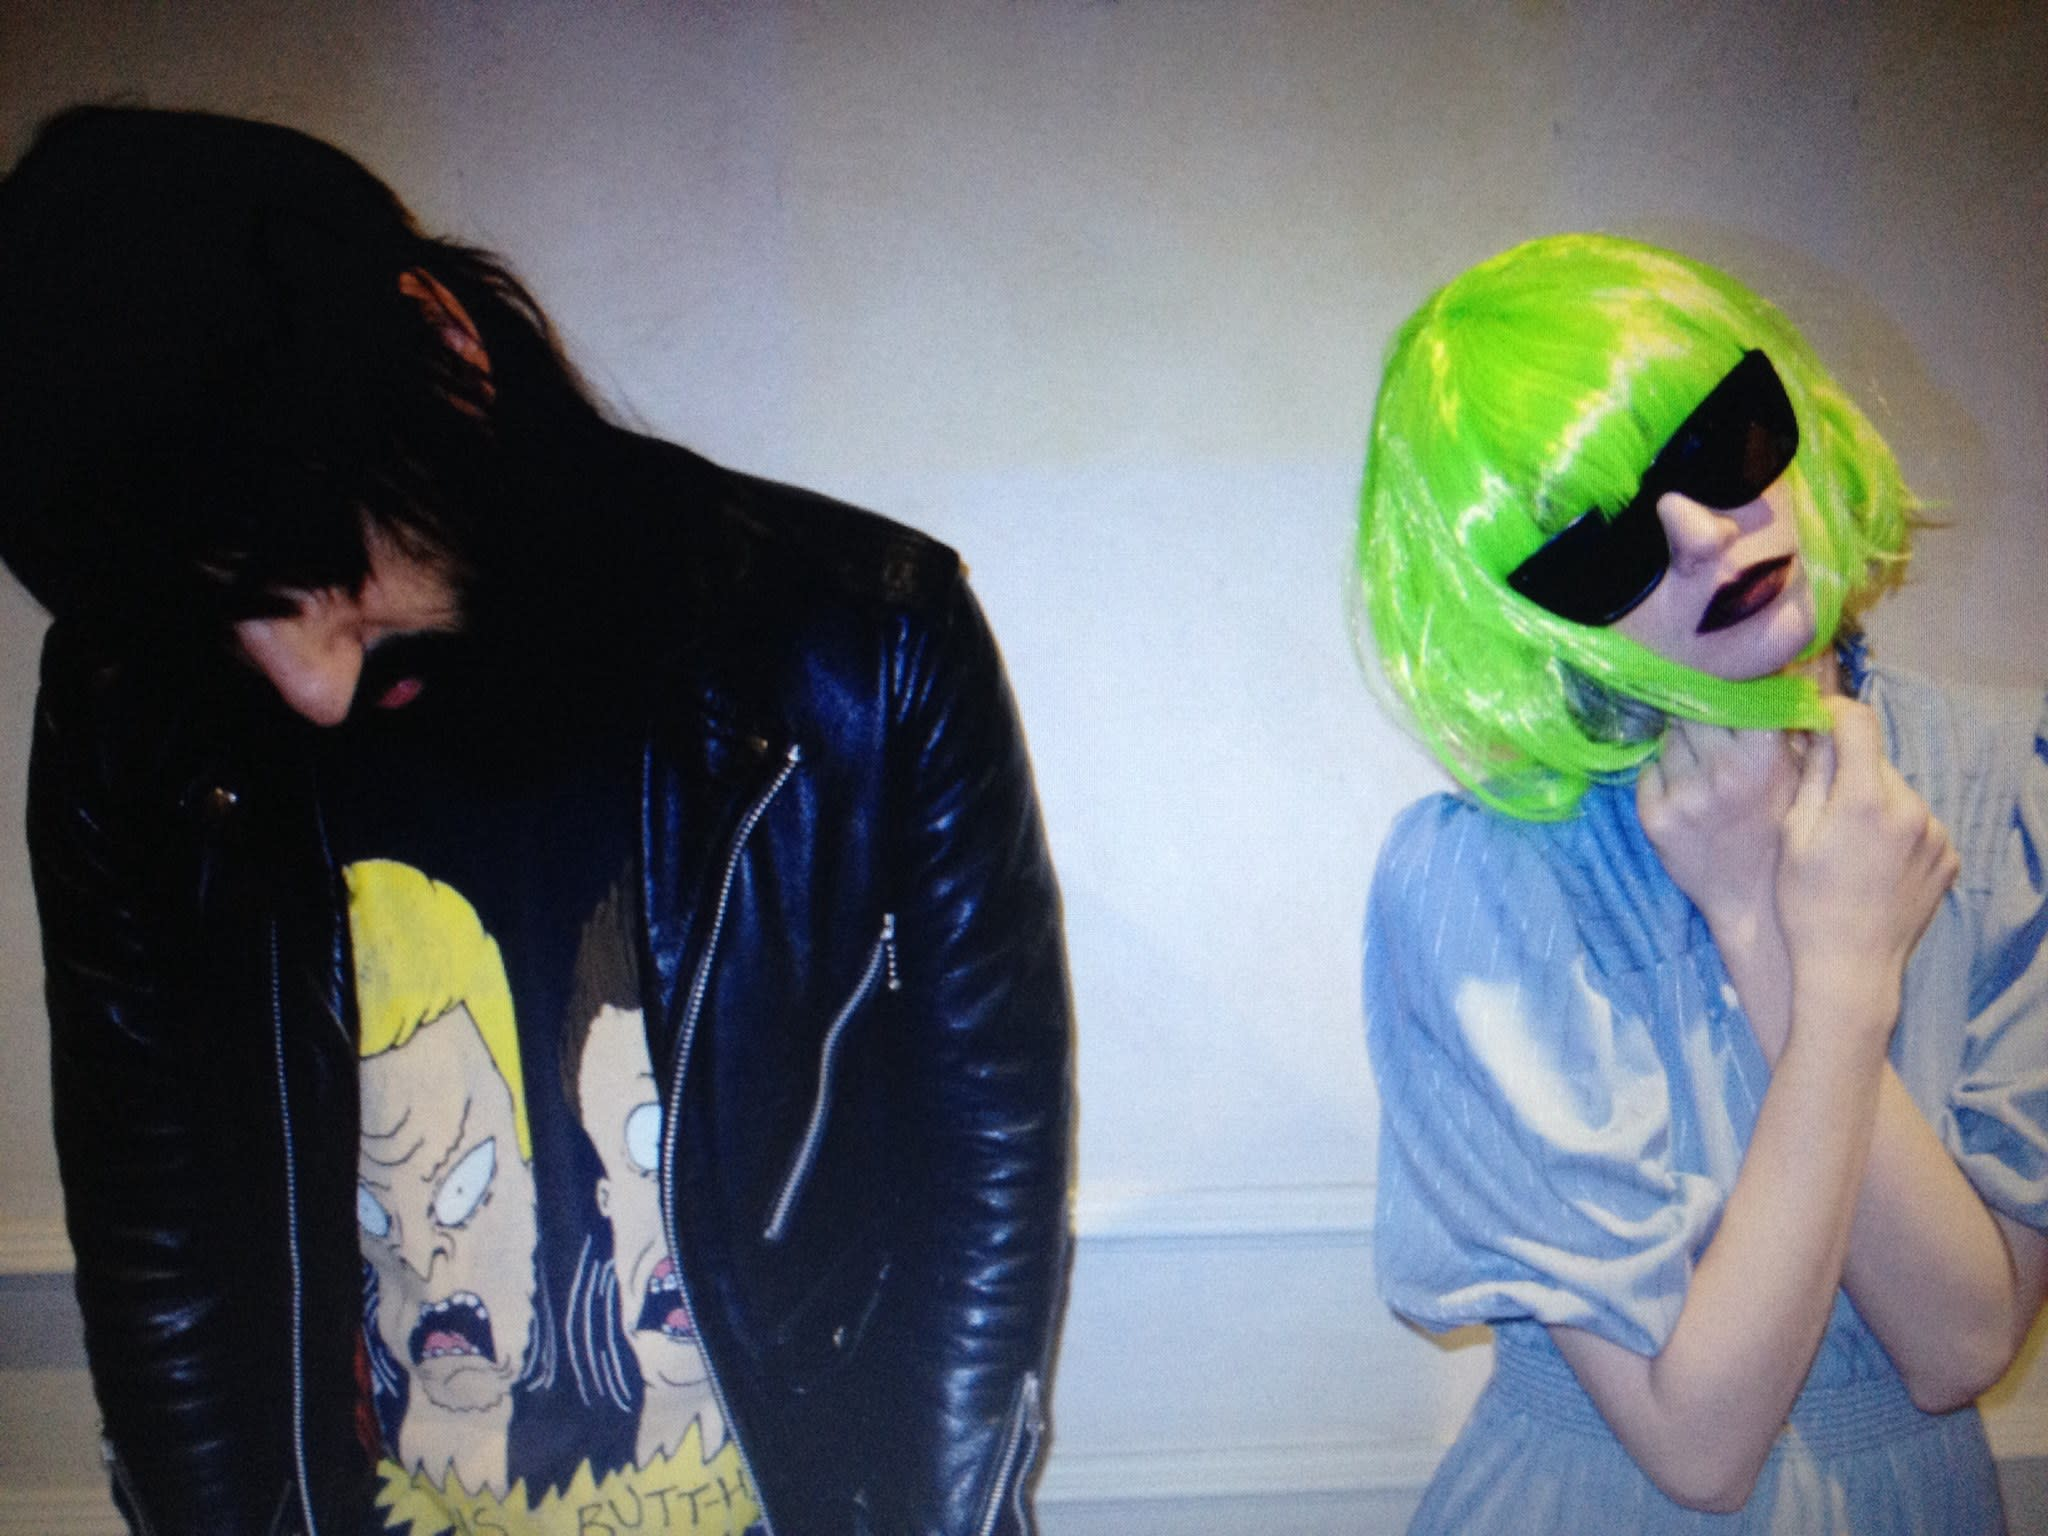 Crystal Castles Play Their First Show Without Alice Glass And Unveil New Singer